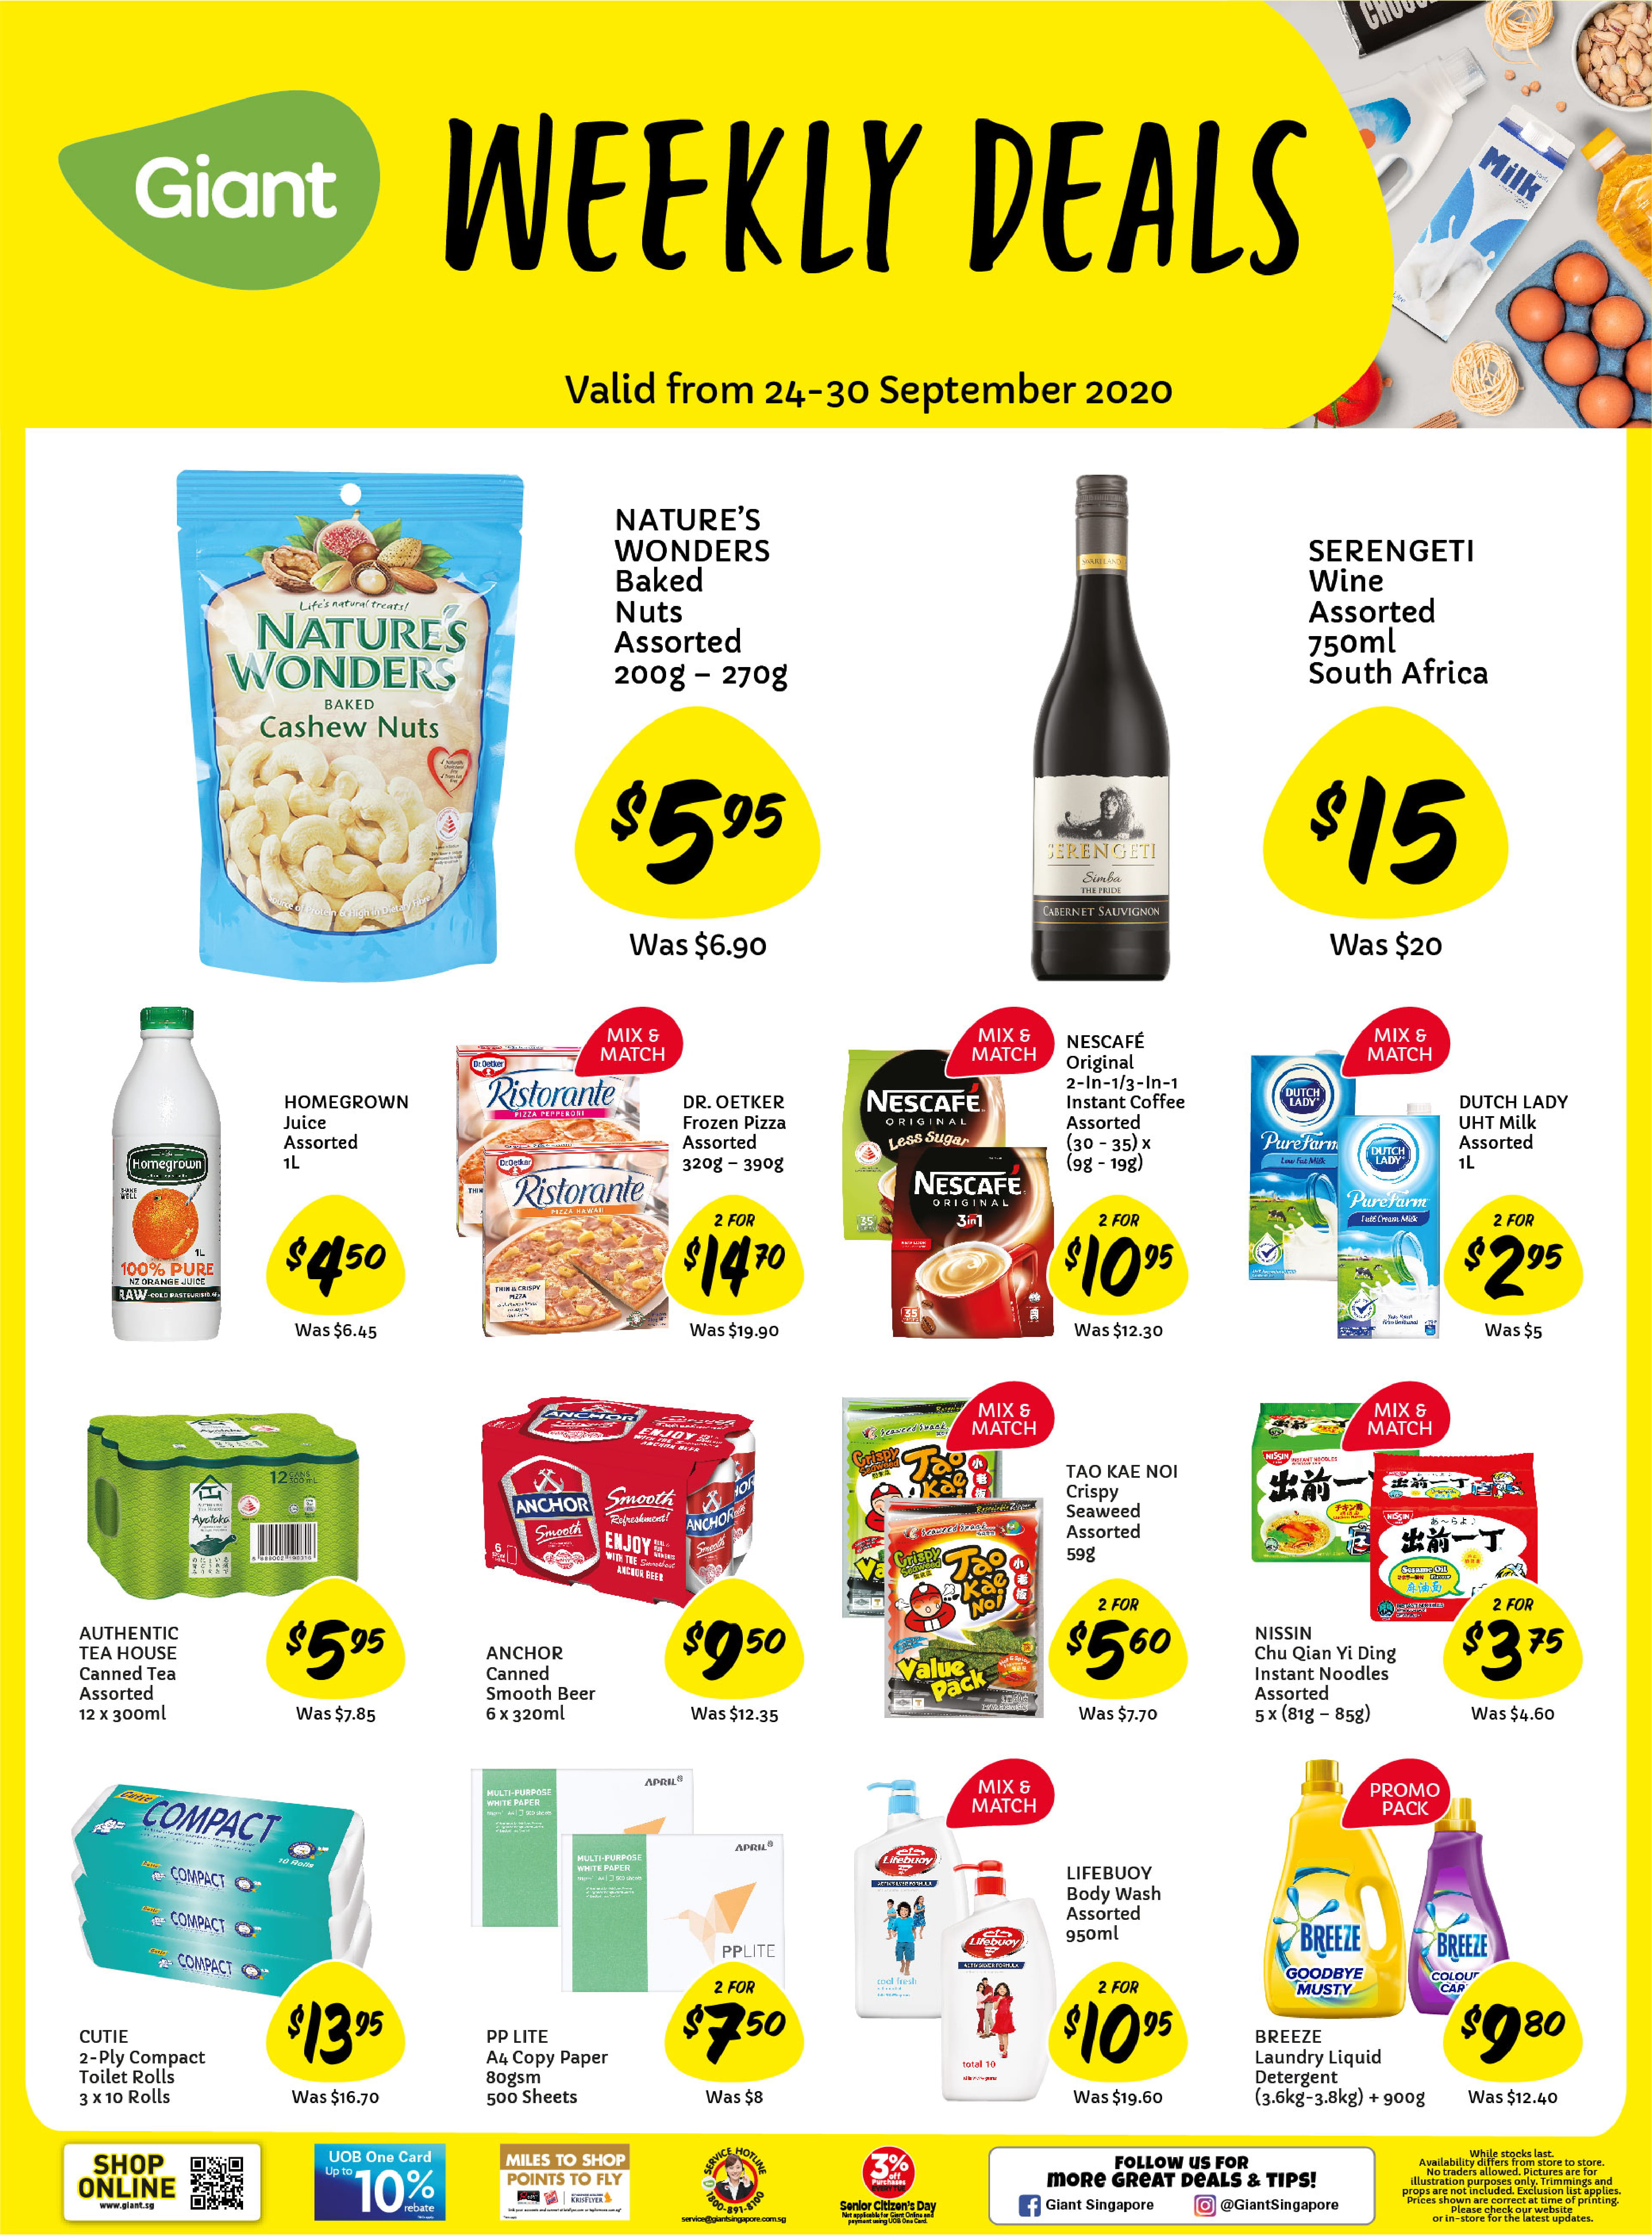 Giant weekly deals from now till 30 September 2020